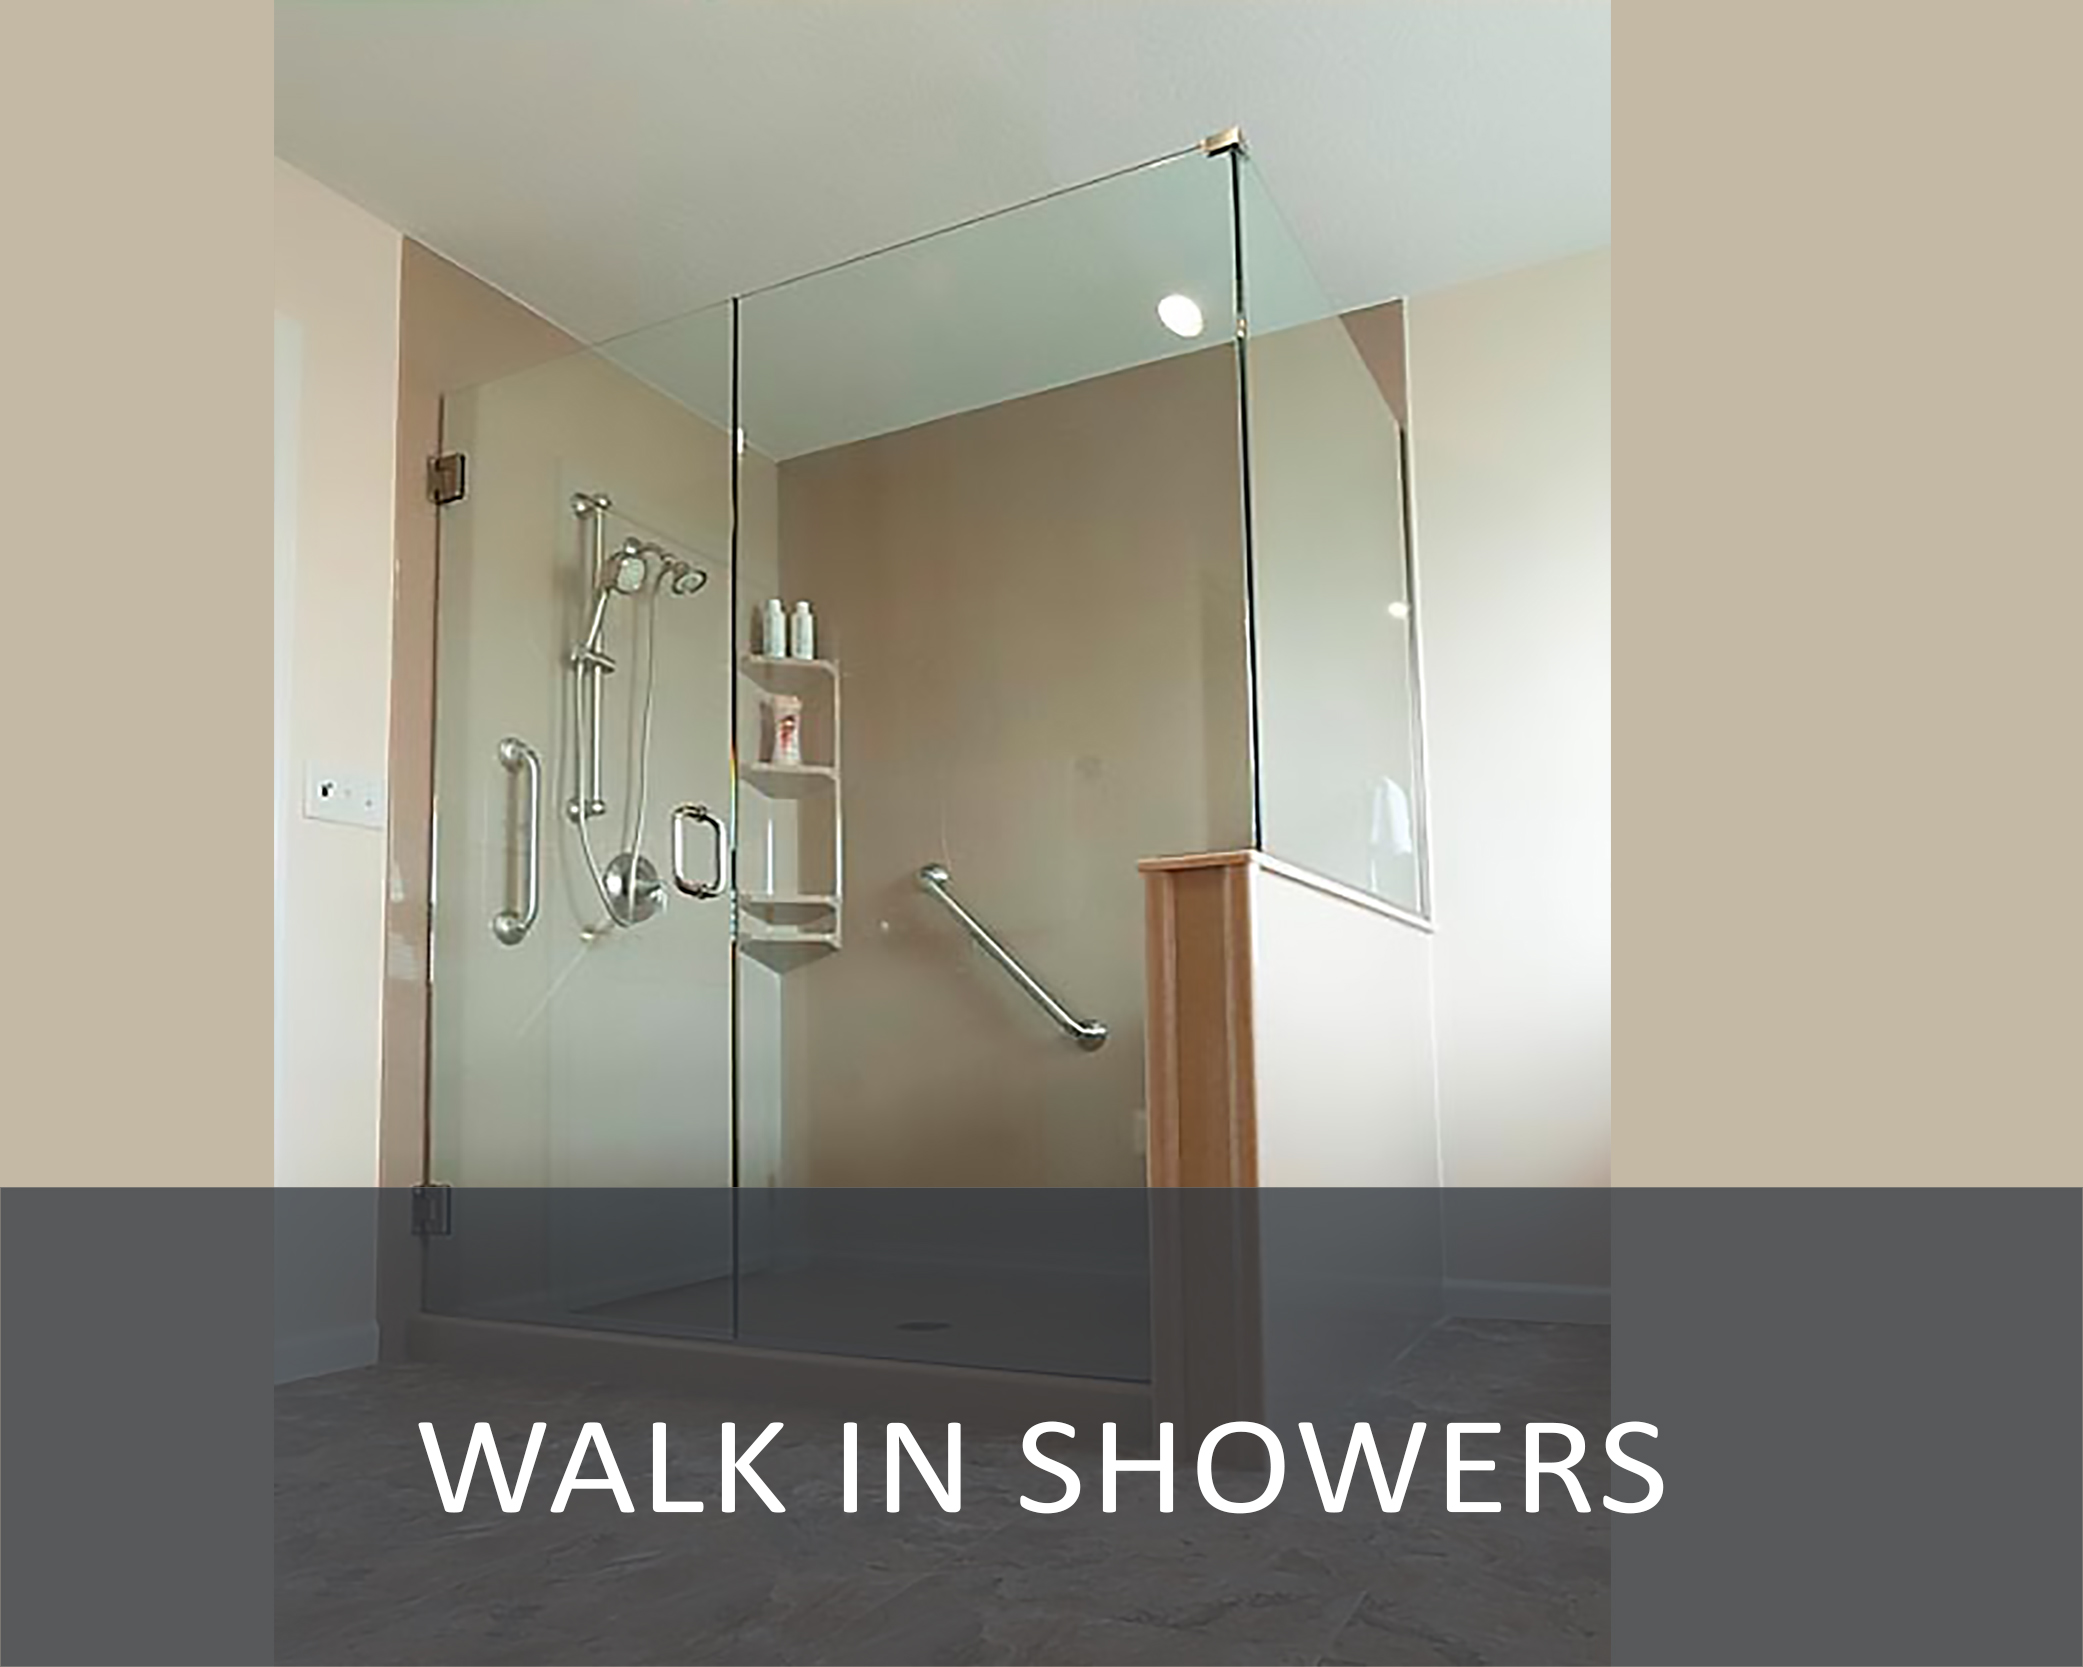 shower full walk photos of glass sofa size showers for concept inhowers comelyhower comely prices in cost doors lowesshower